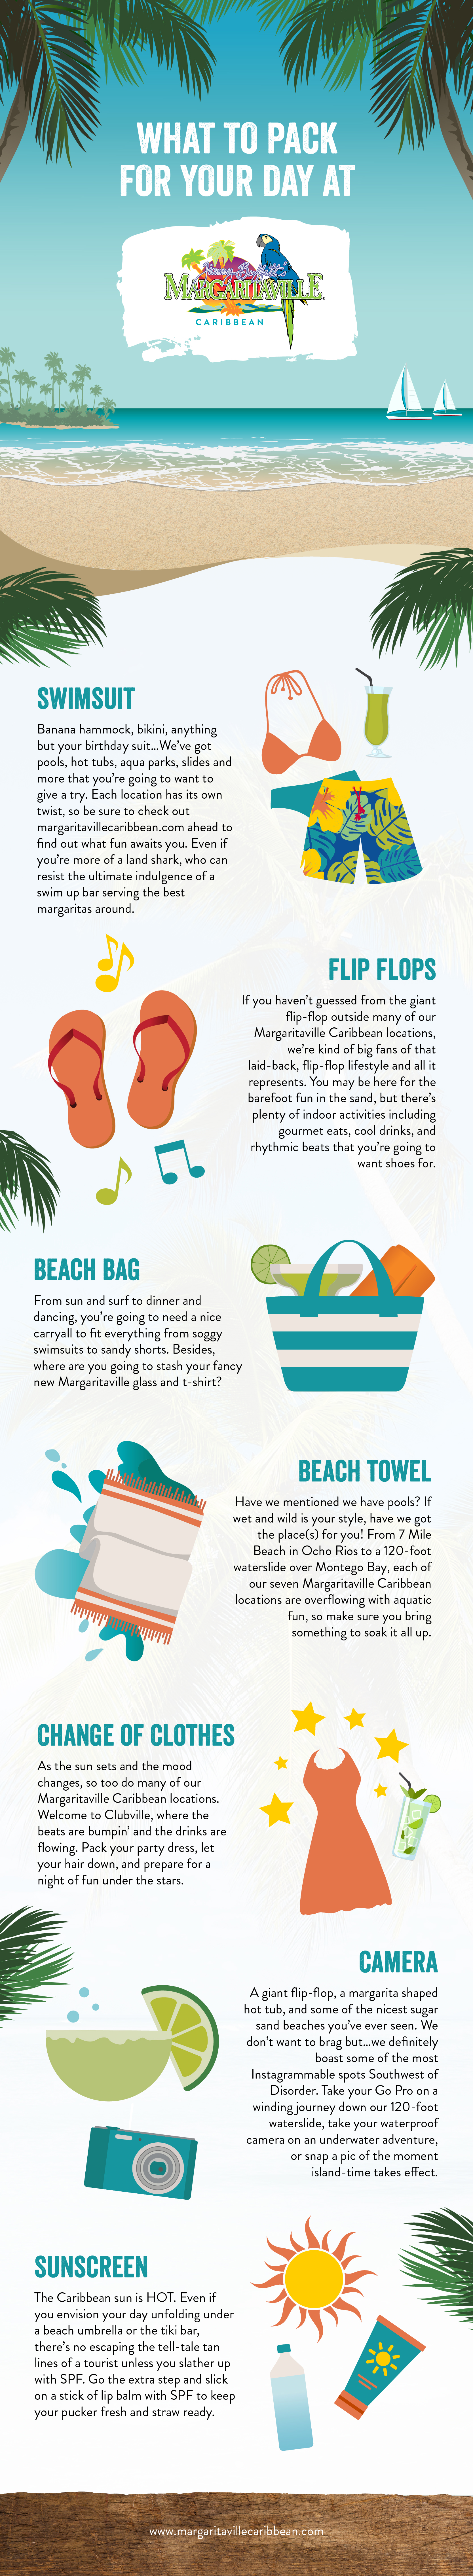 Infographic of what to pack